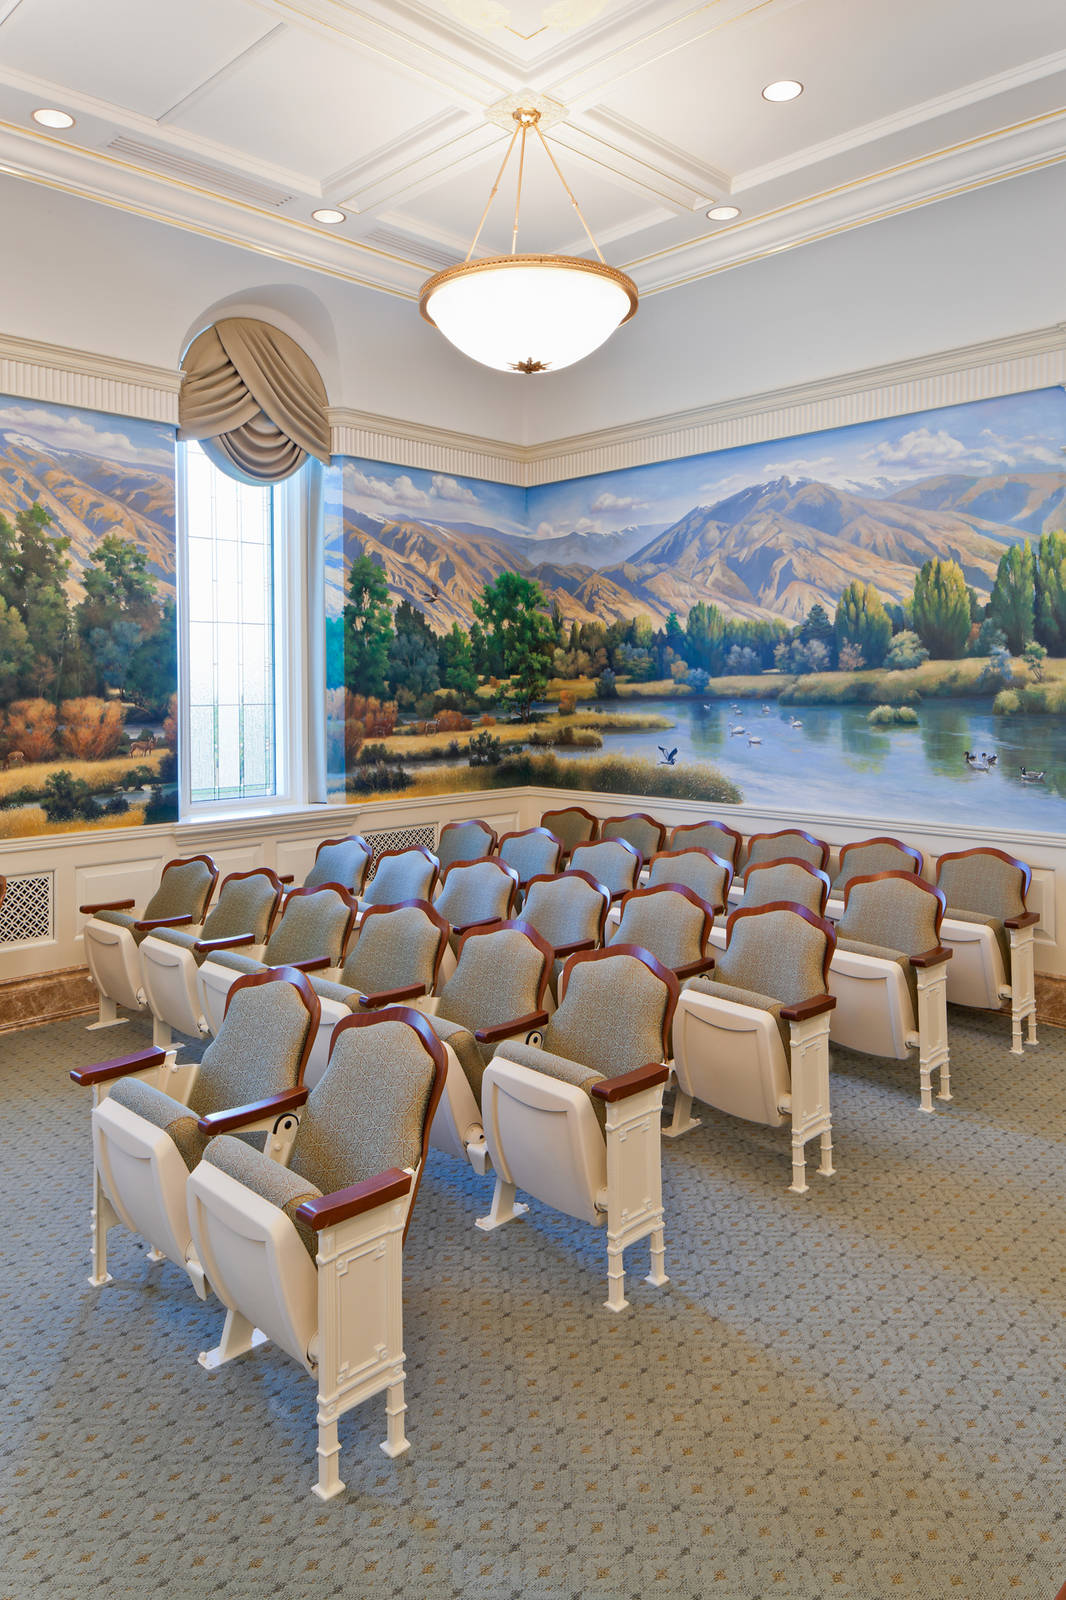 Brigham City Temple Interior